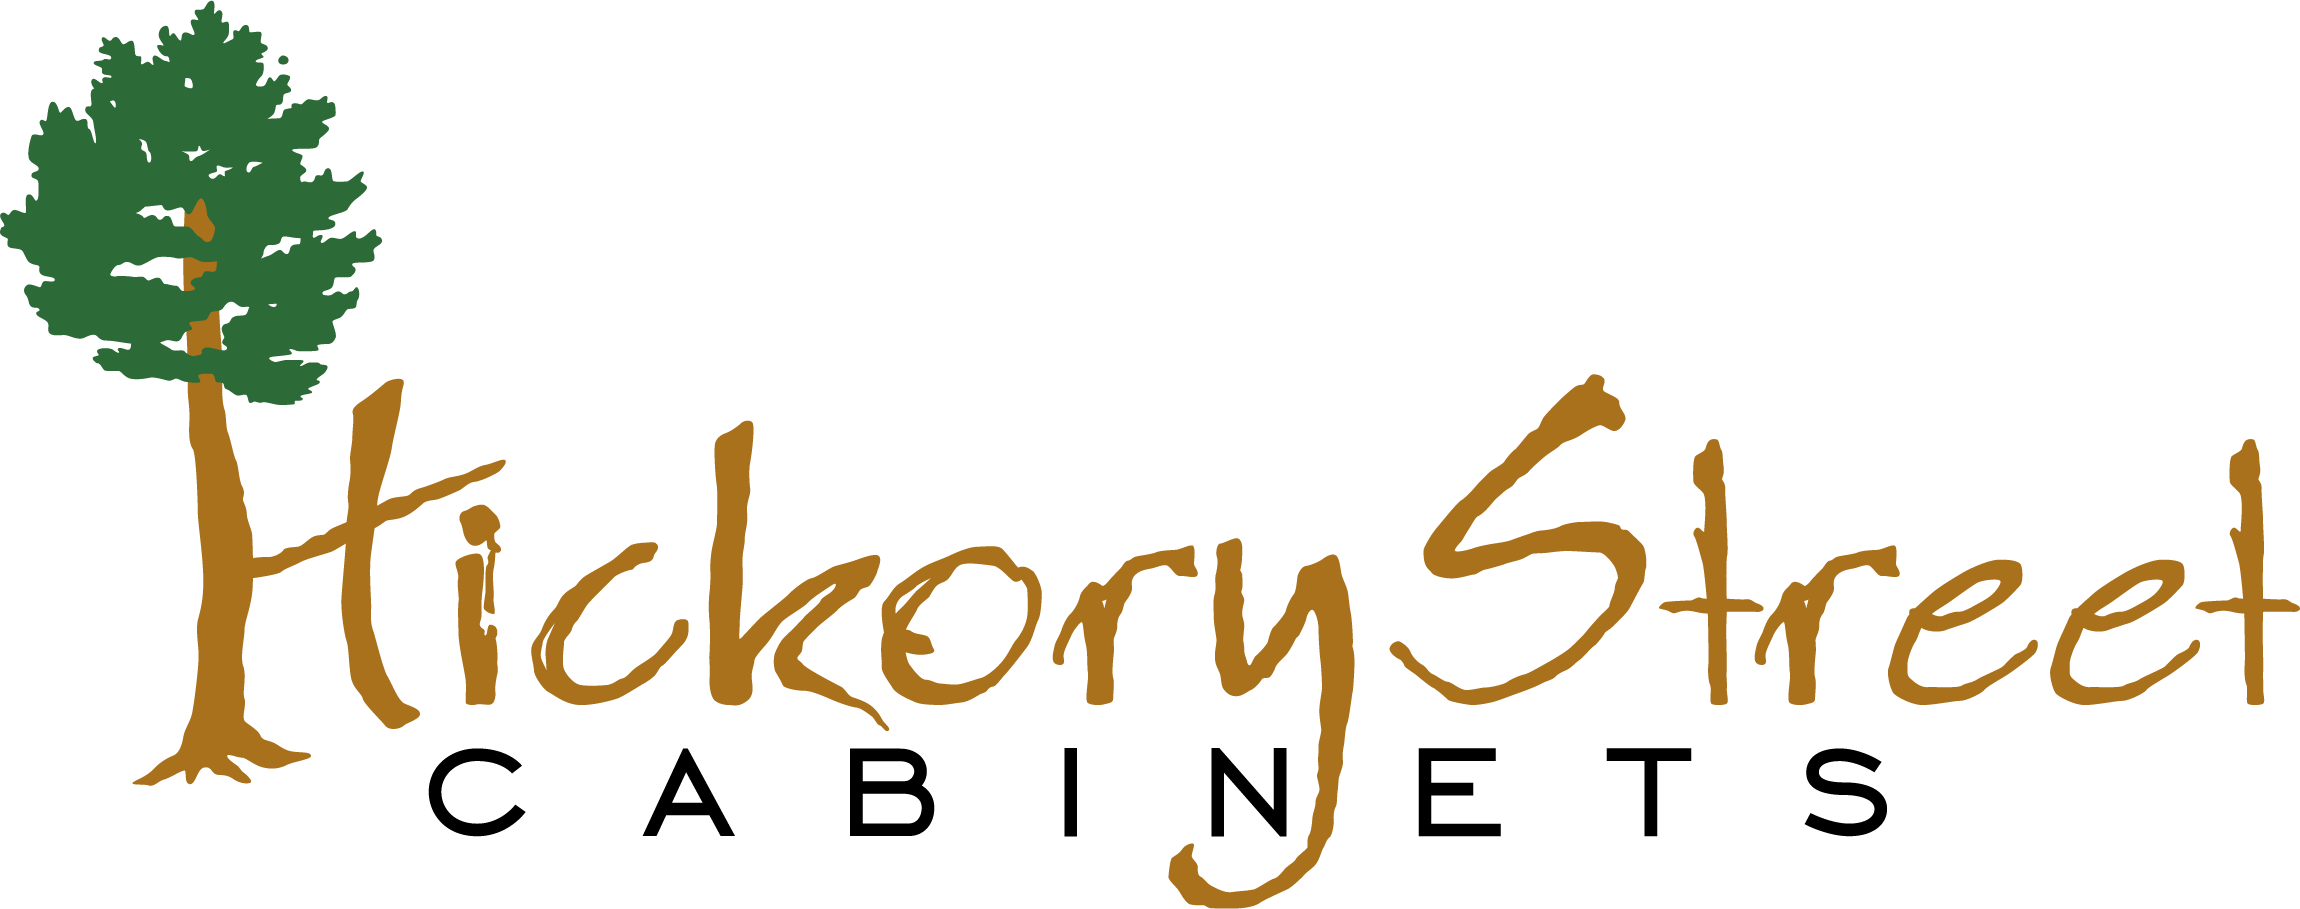 Hickory Street Cabinets in Troy, Illinois